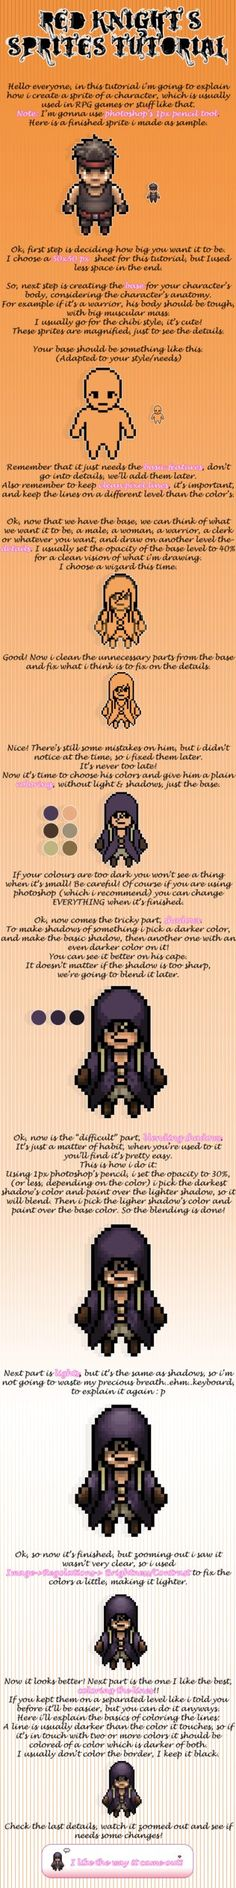 Red Knight's Sprite Tutorial by ~RedKnight91 on deviantART